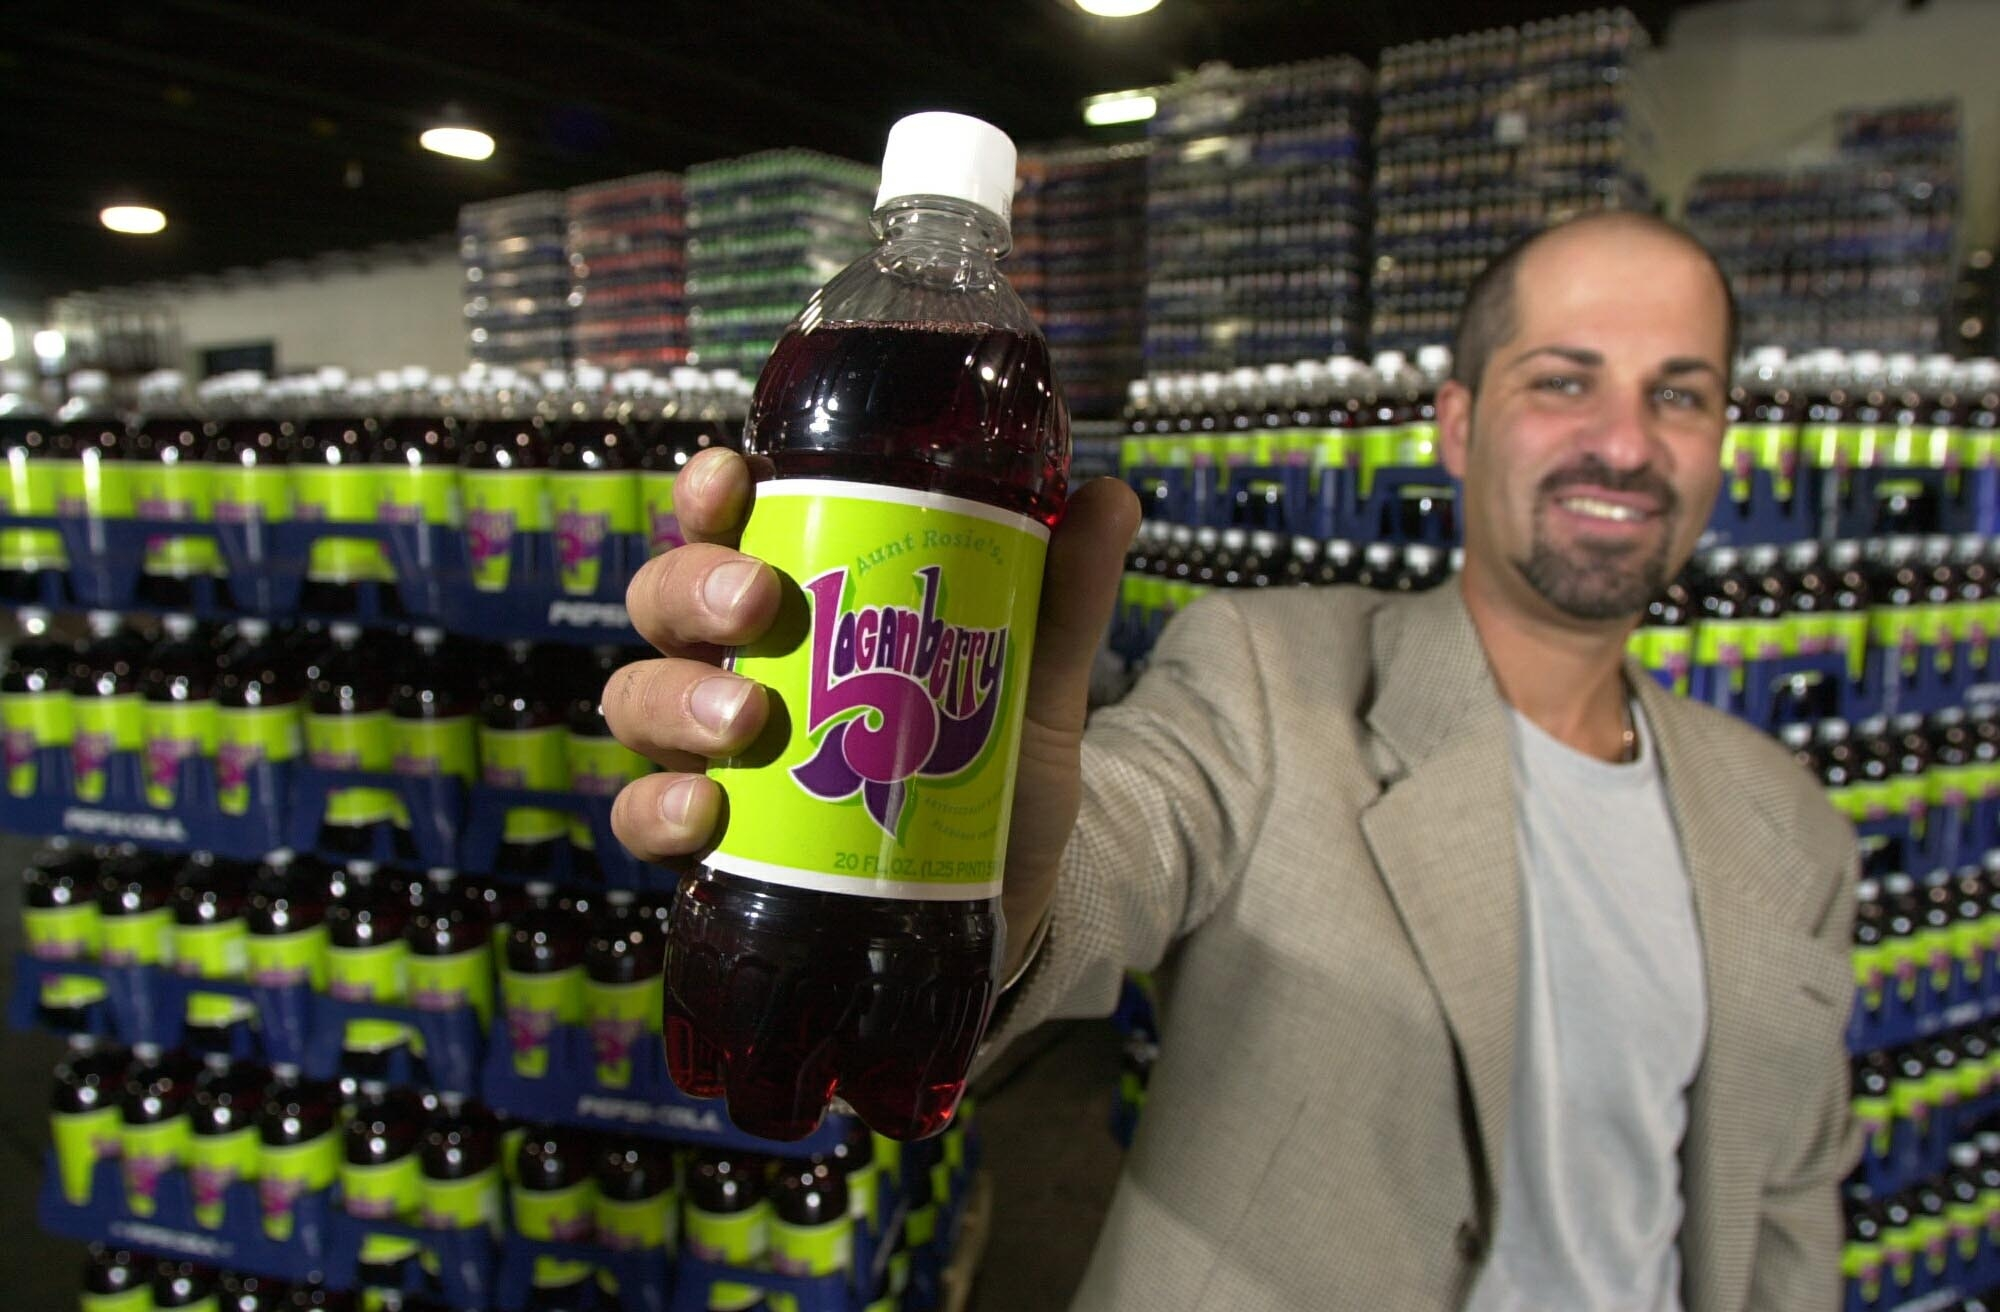 In September 2001, Scott Pastor of Pepsi-Cola Buffalo Bottling posed amid Aunt Rosie's Loganberry at its Walden Avenue plant.